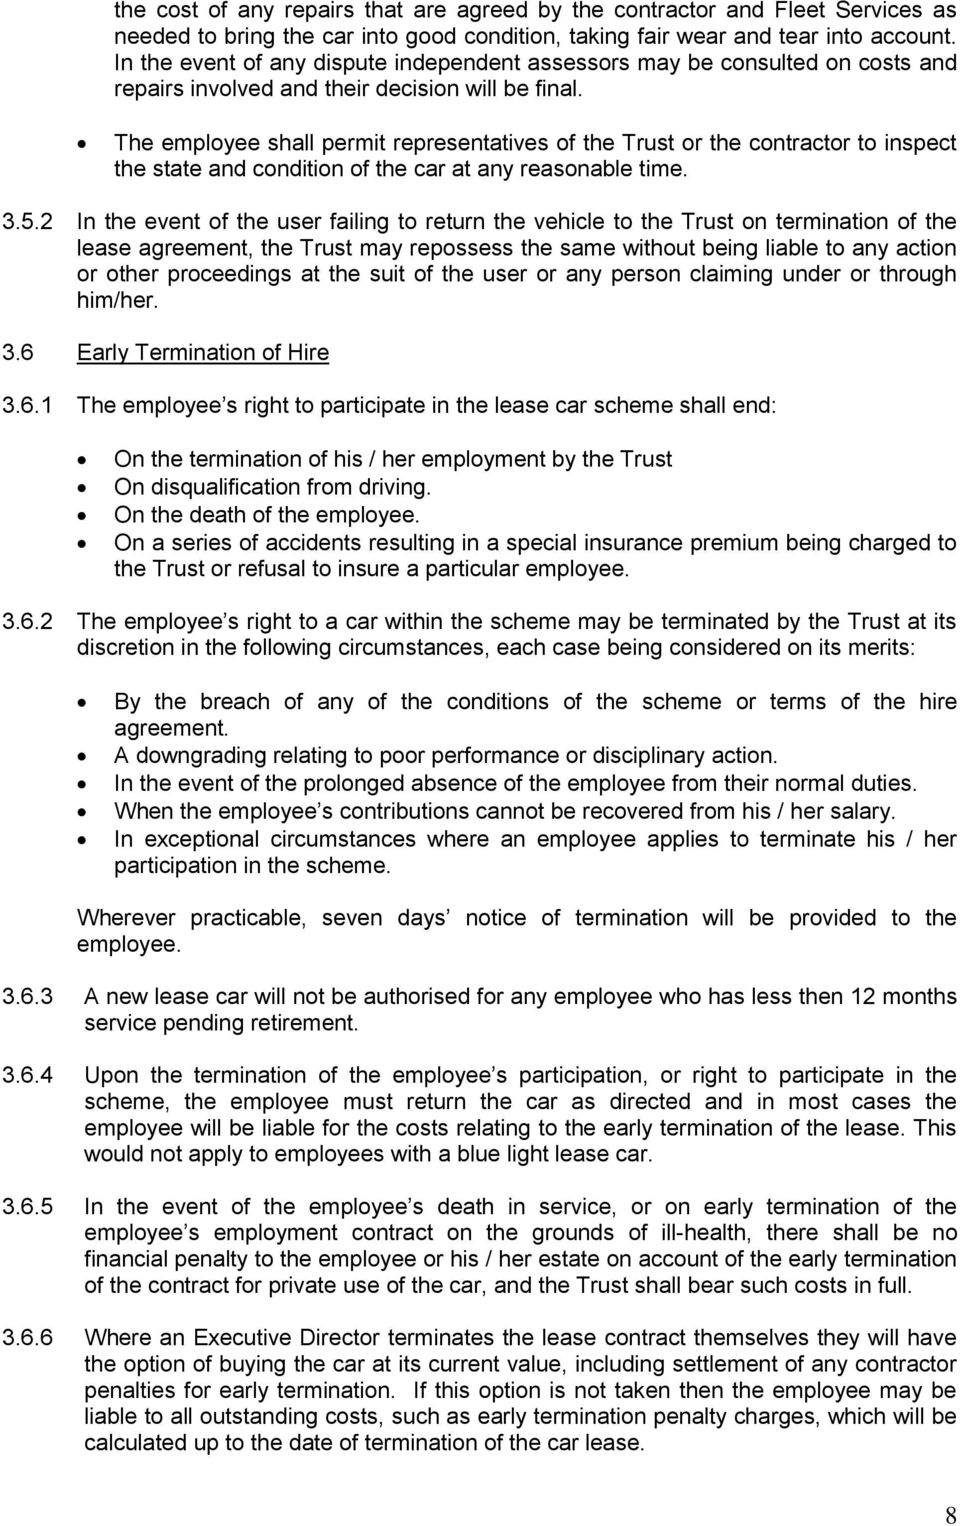 The employee shall permit representatives of the Trust or the contractor to inspect the state and condition of the car at any reasonable time. 3.5.